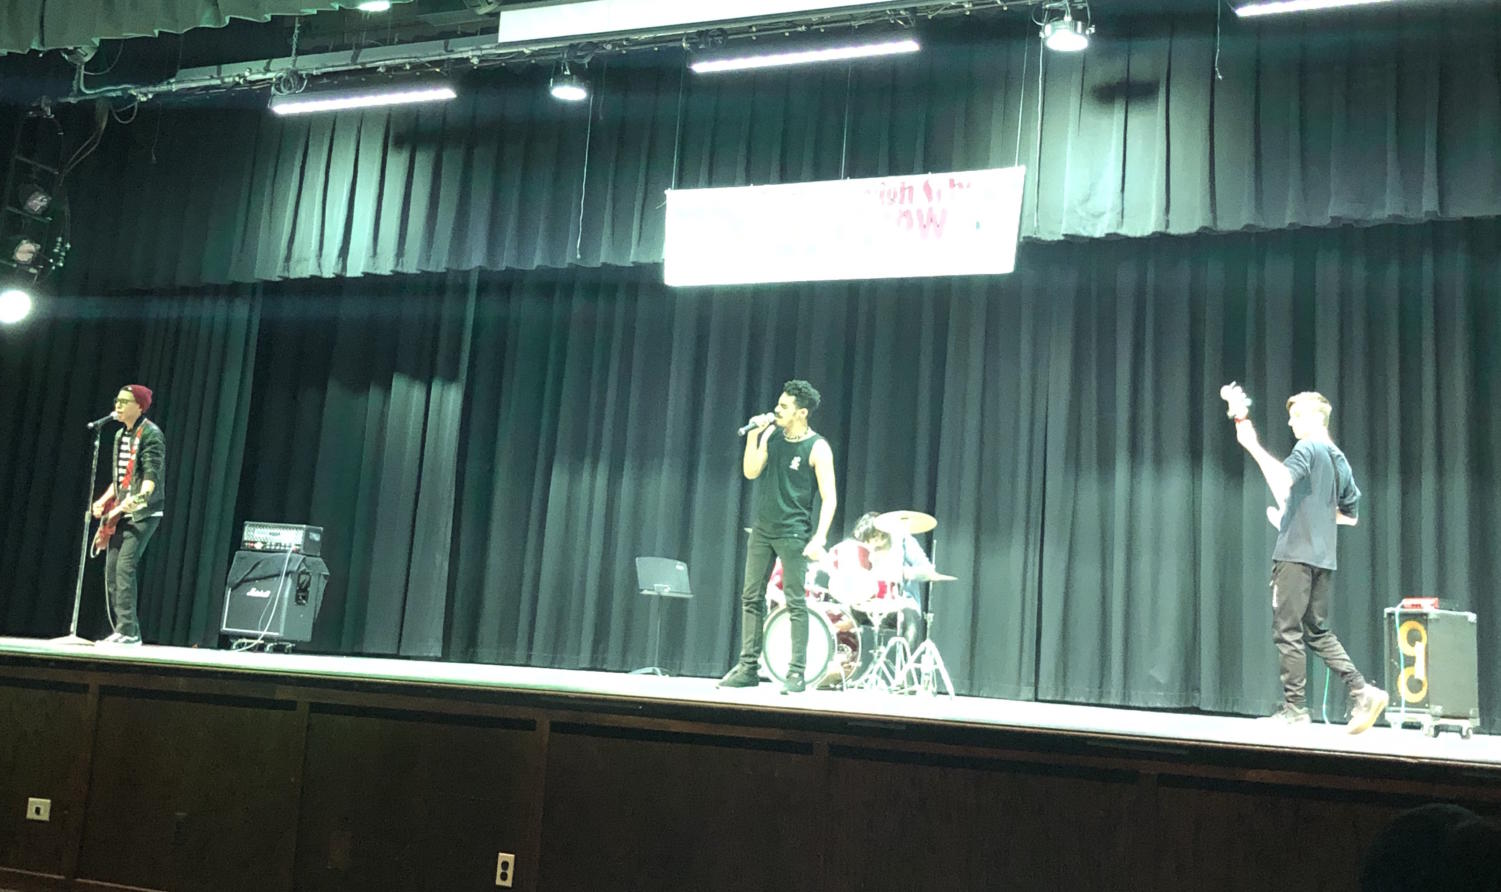 S.O.A.P., which stands for Starts Over A Planet, placed first at Becton's annual talent show.